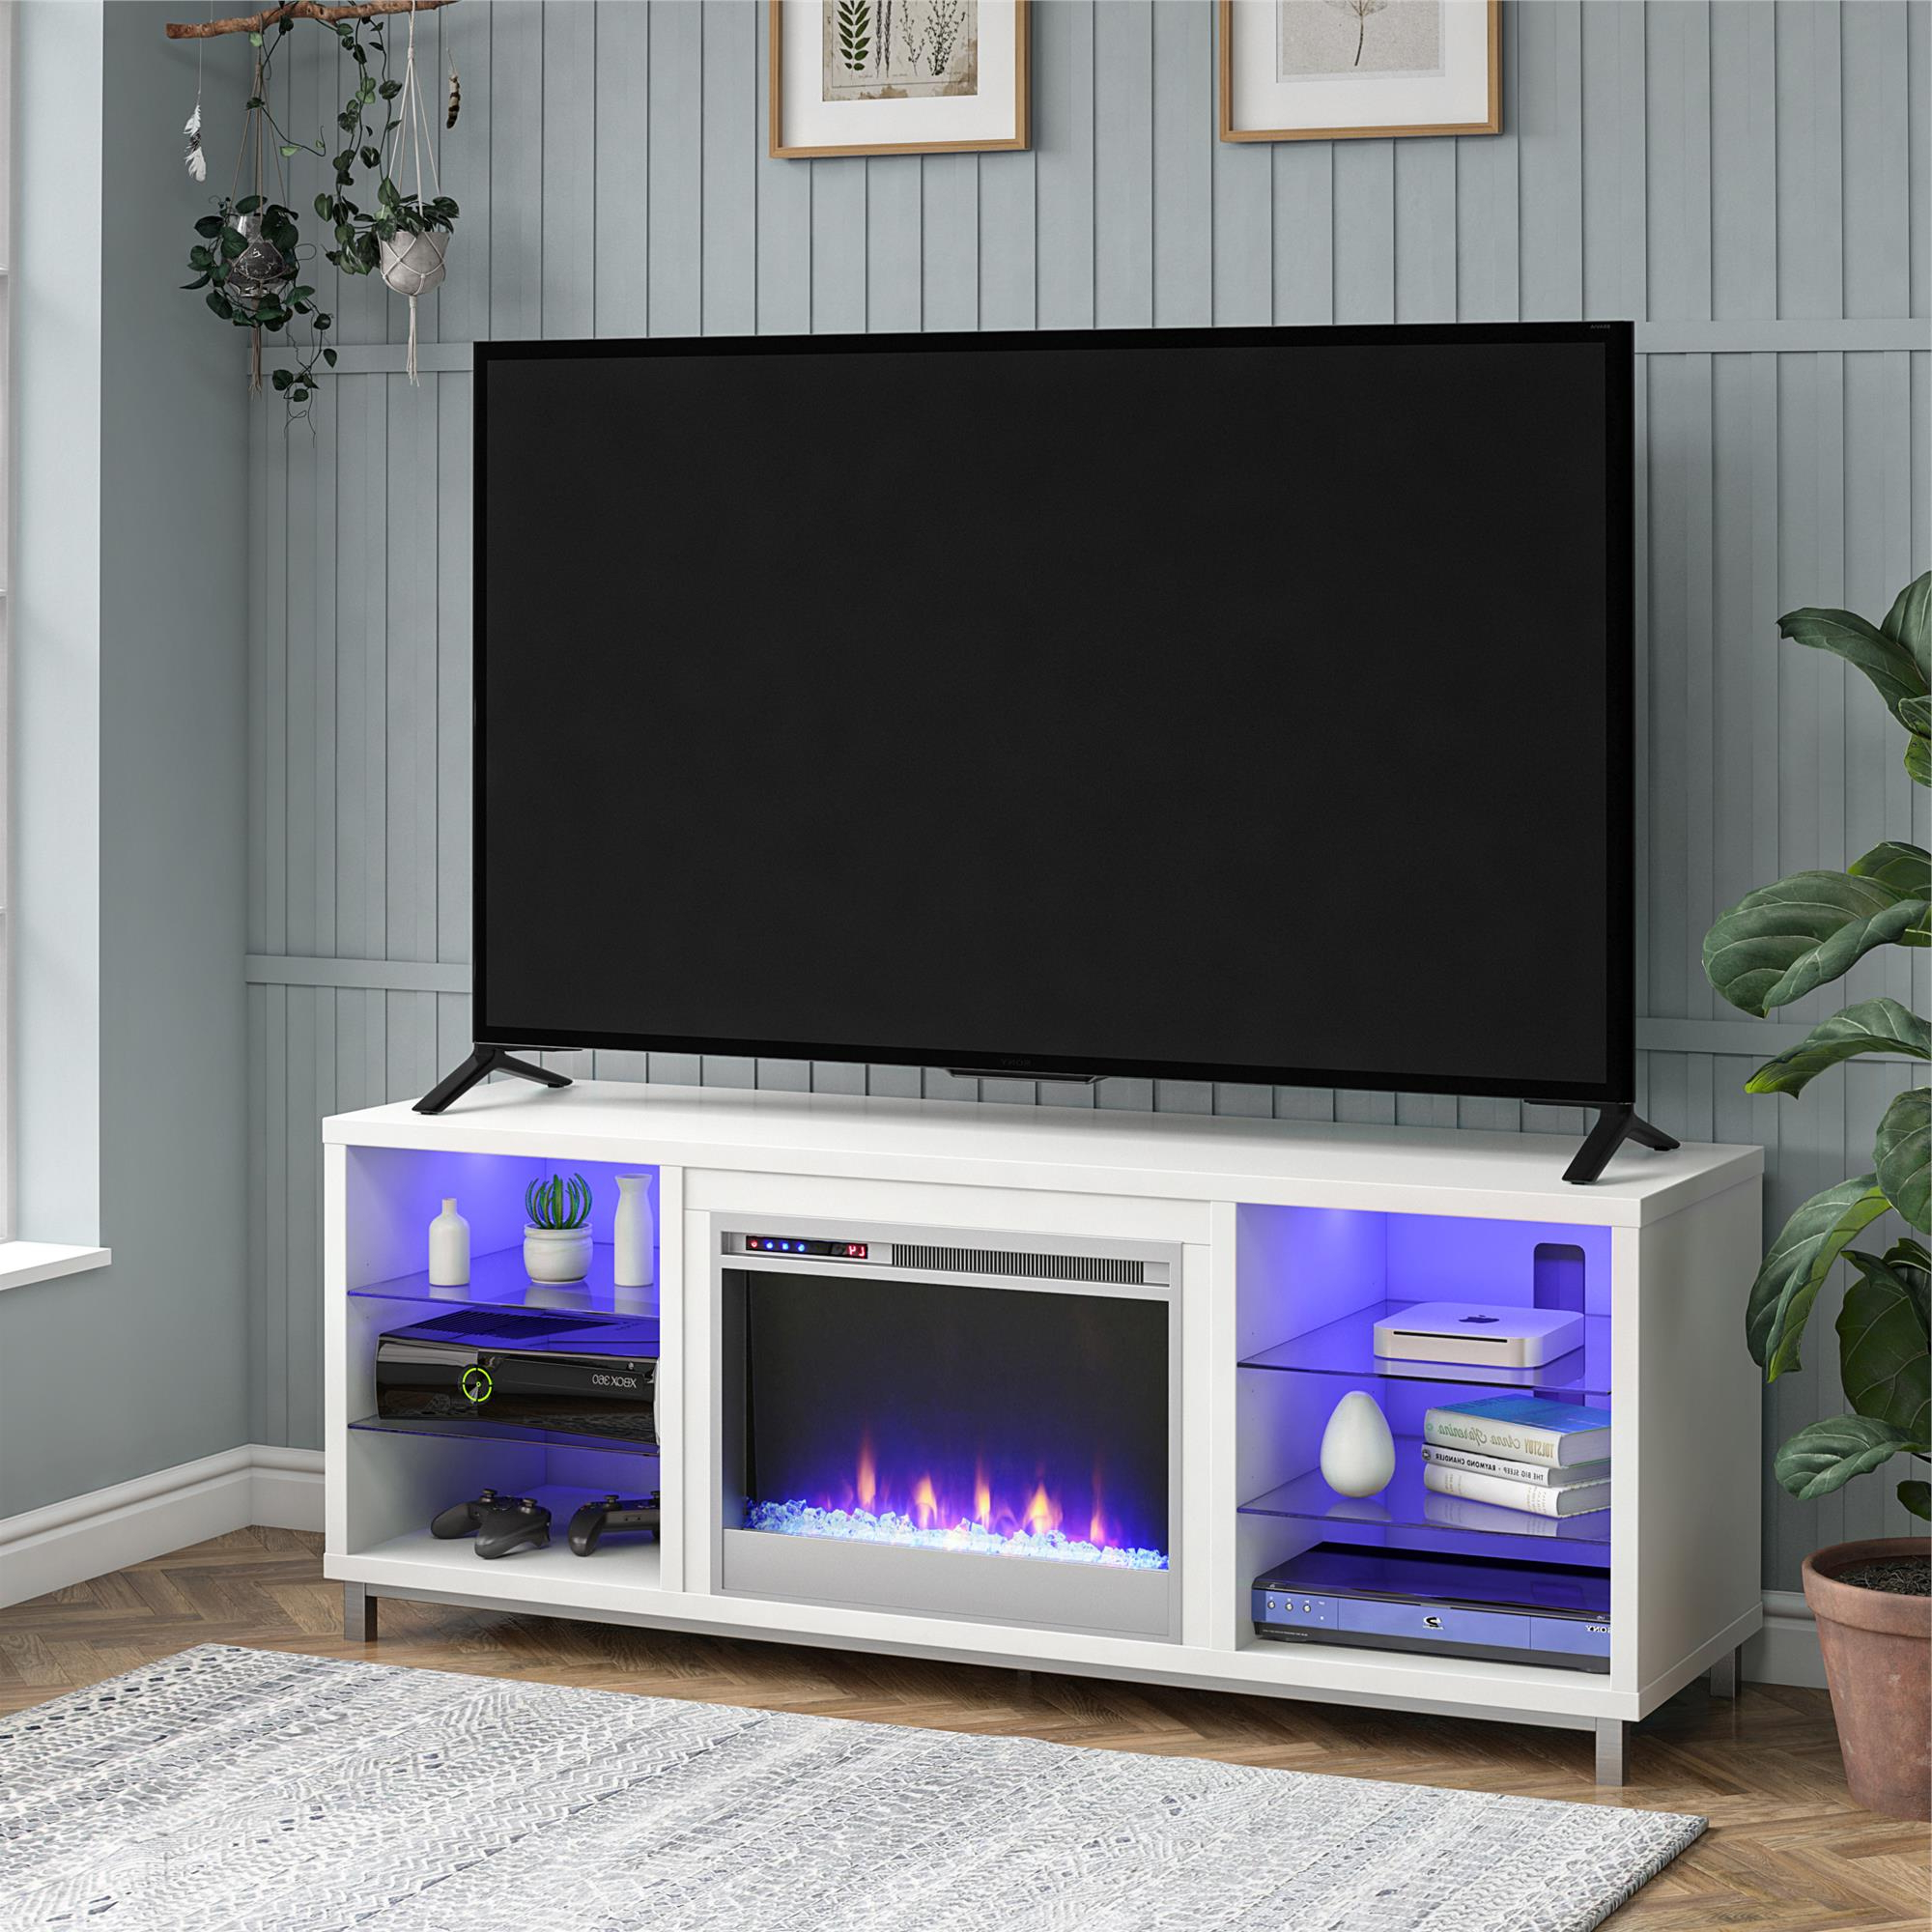 """Trendy Ameriwood Home Lumina Fireplace Tv Stand For Tvs Up To 70 Intended For Mainor Tv Stands For Tvs Up To 70"""" (View 3 of 25)"""